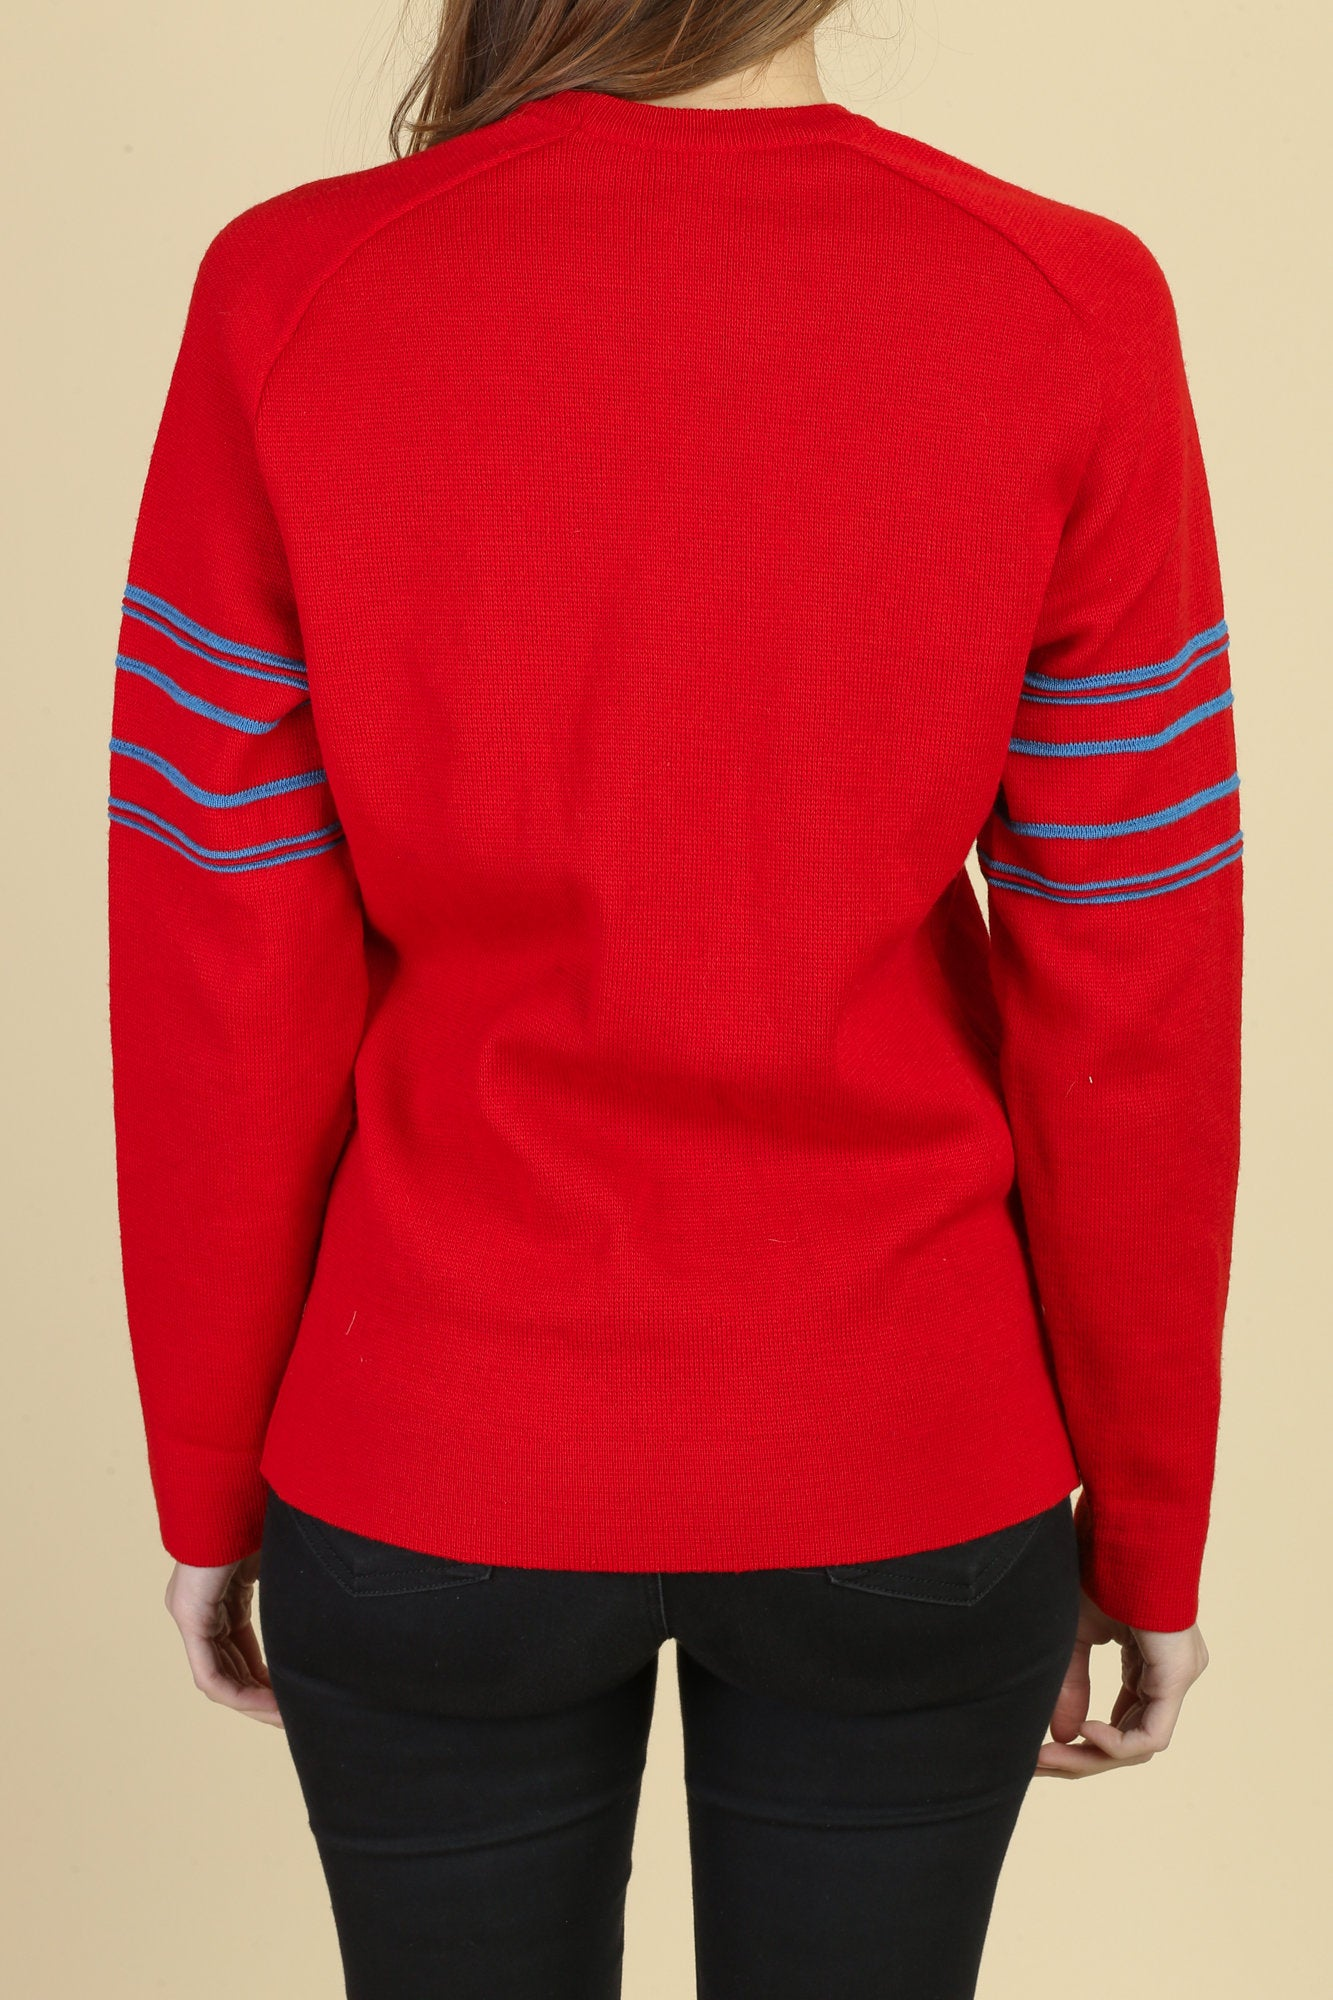 70s Striped Knit Ski Sweater - Medium